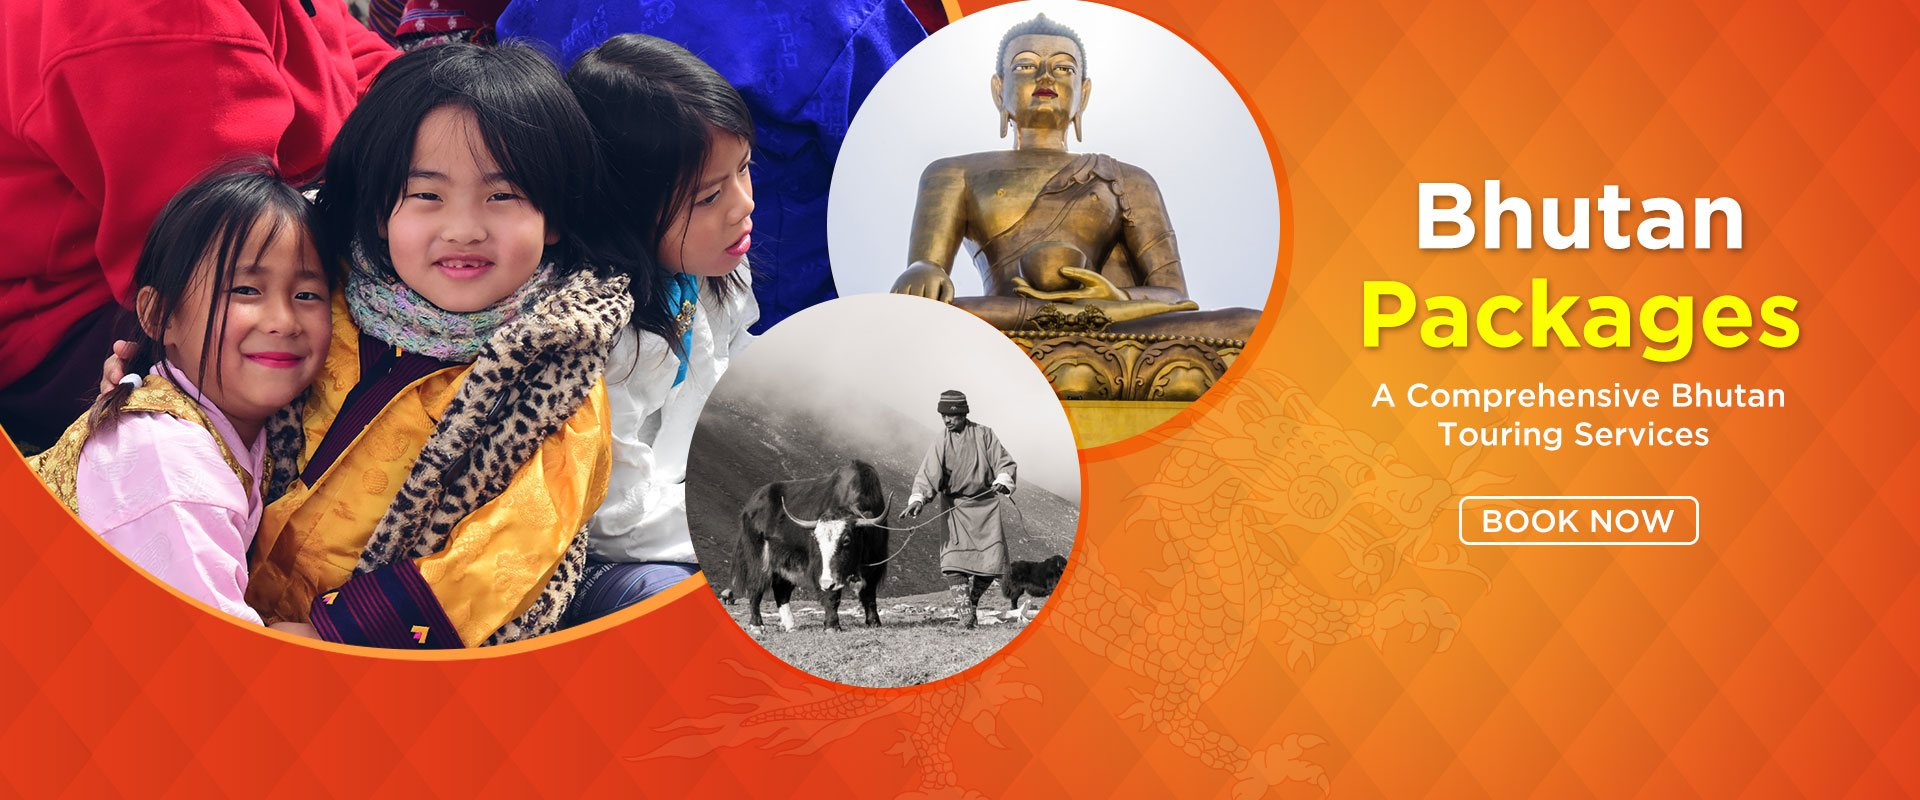 Book Bhutan Holiday Travel Packages